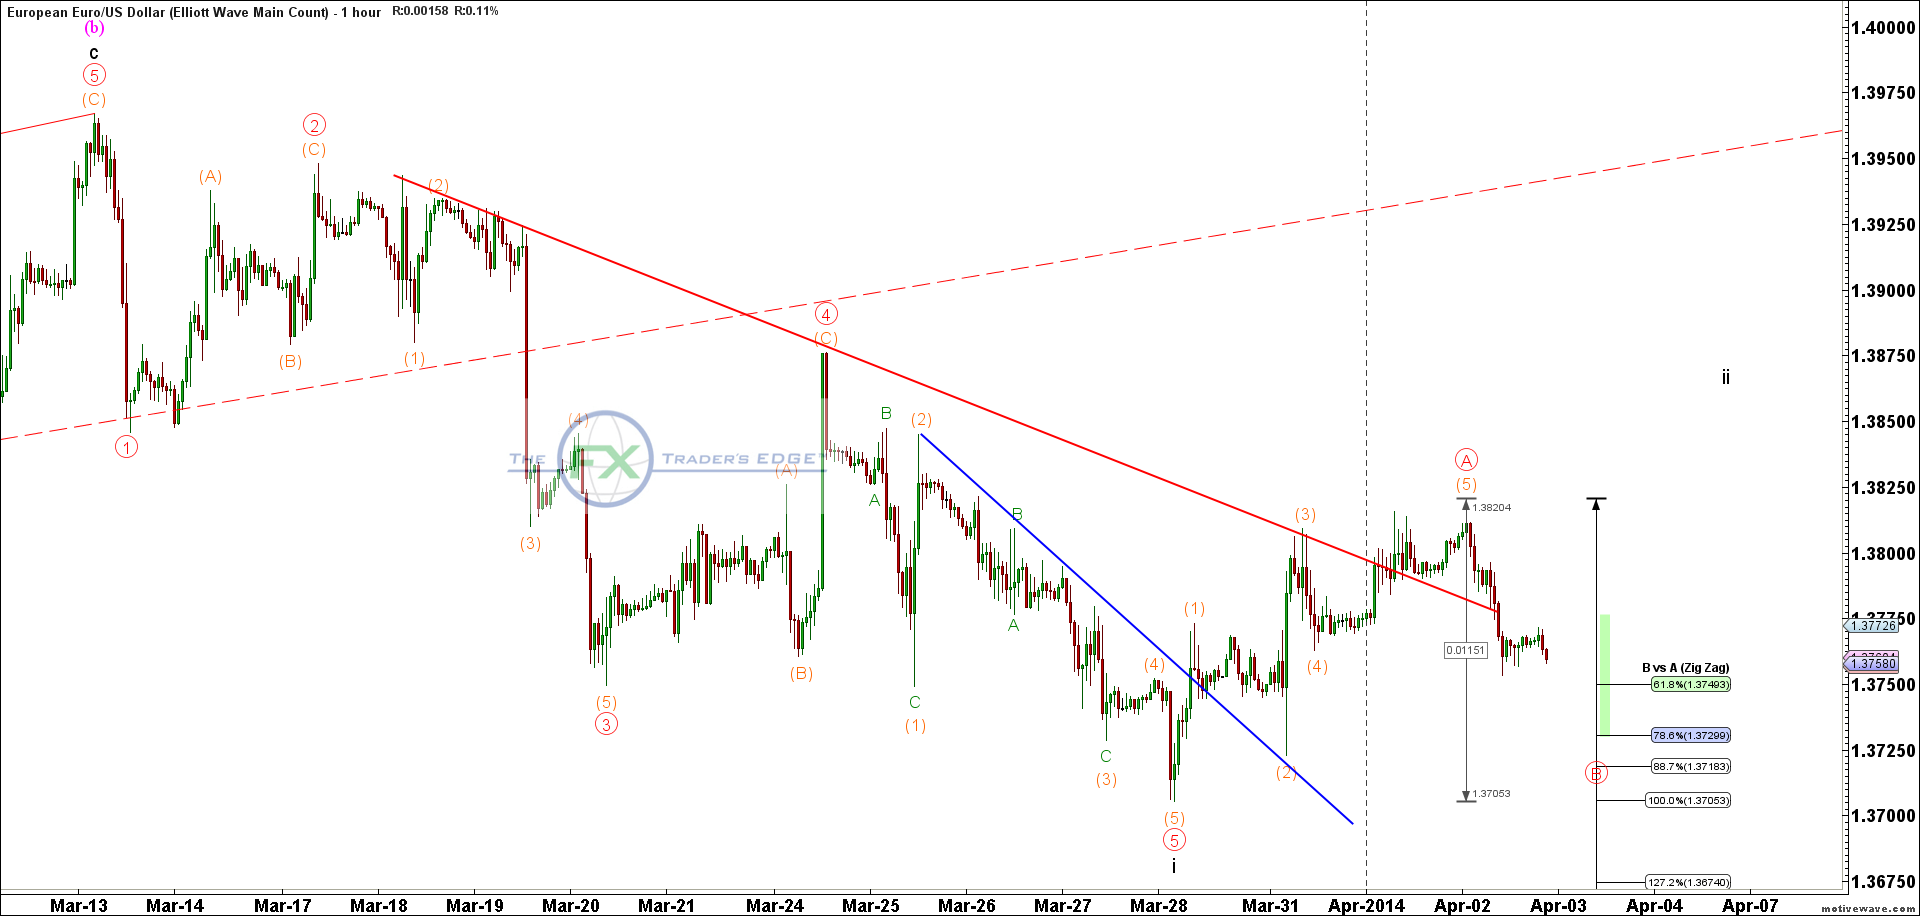 EURUSD-Elliott-Wave-Main-Count-Apr-02-2147-PM-1-hour